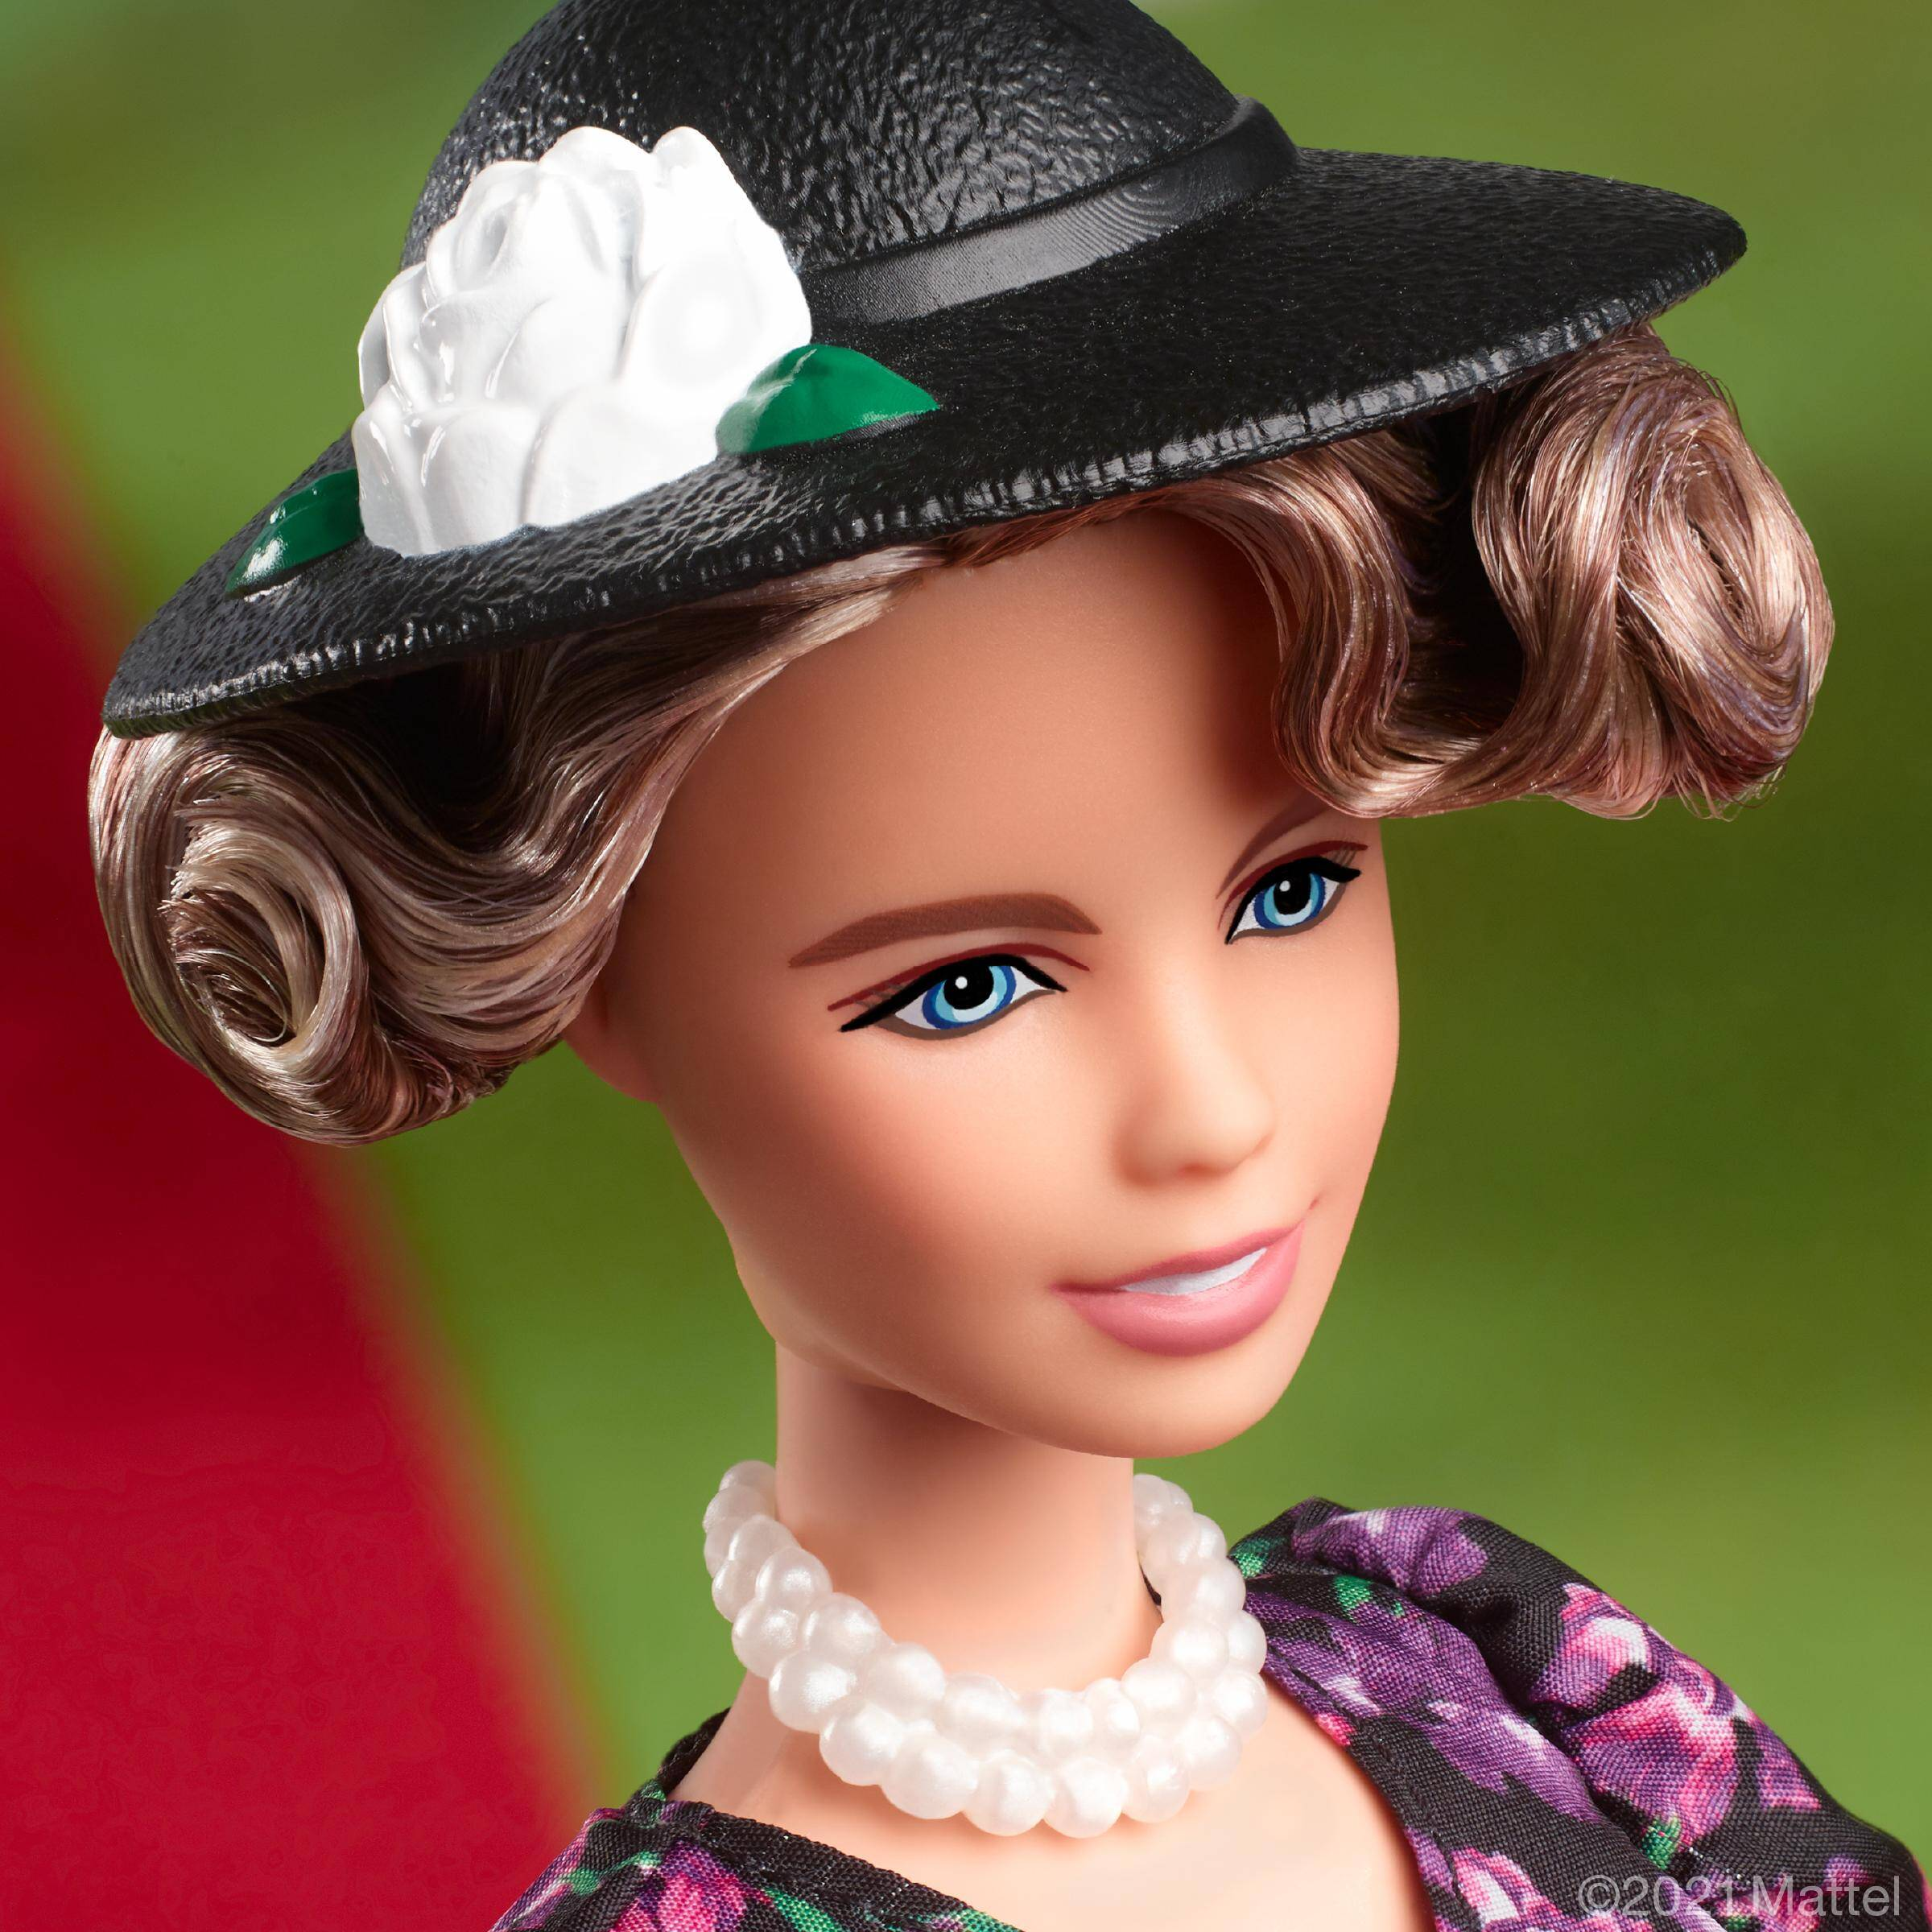 Awesome News: Barbie Honors International Women's Day With A Eleanor Roosevelt Beautiful Doll